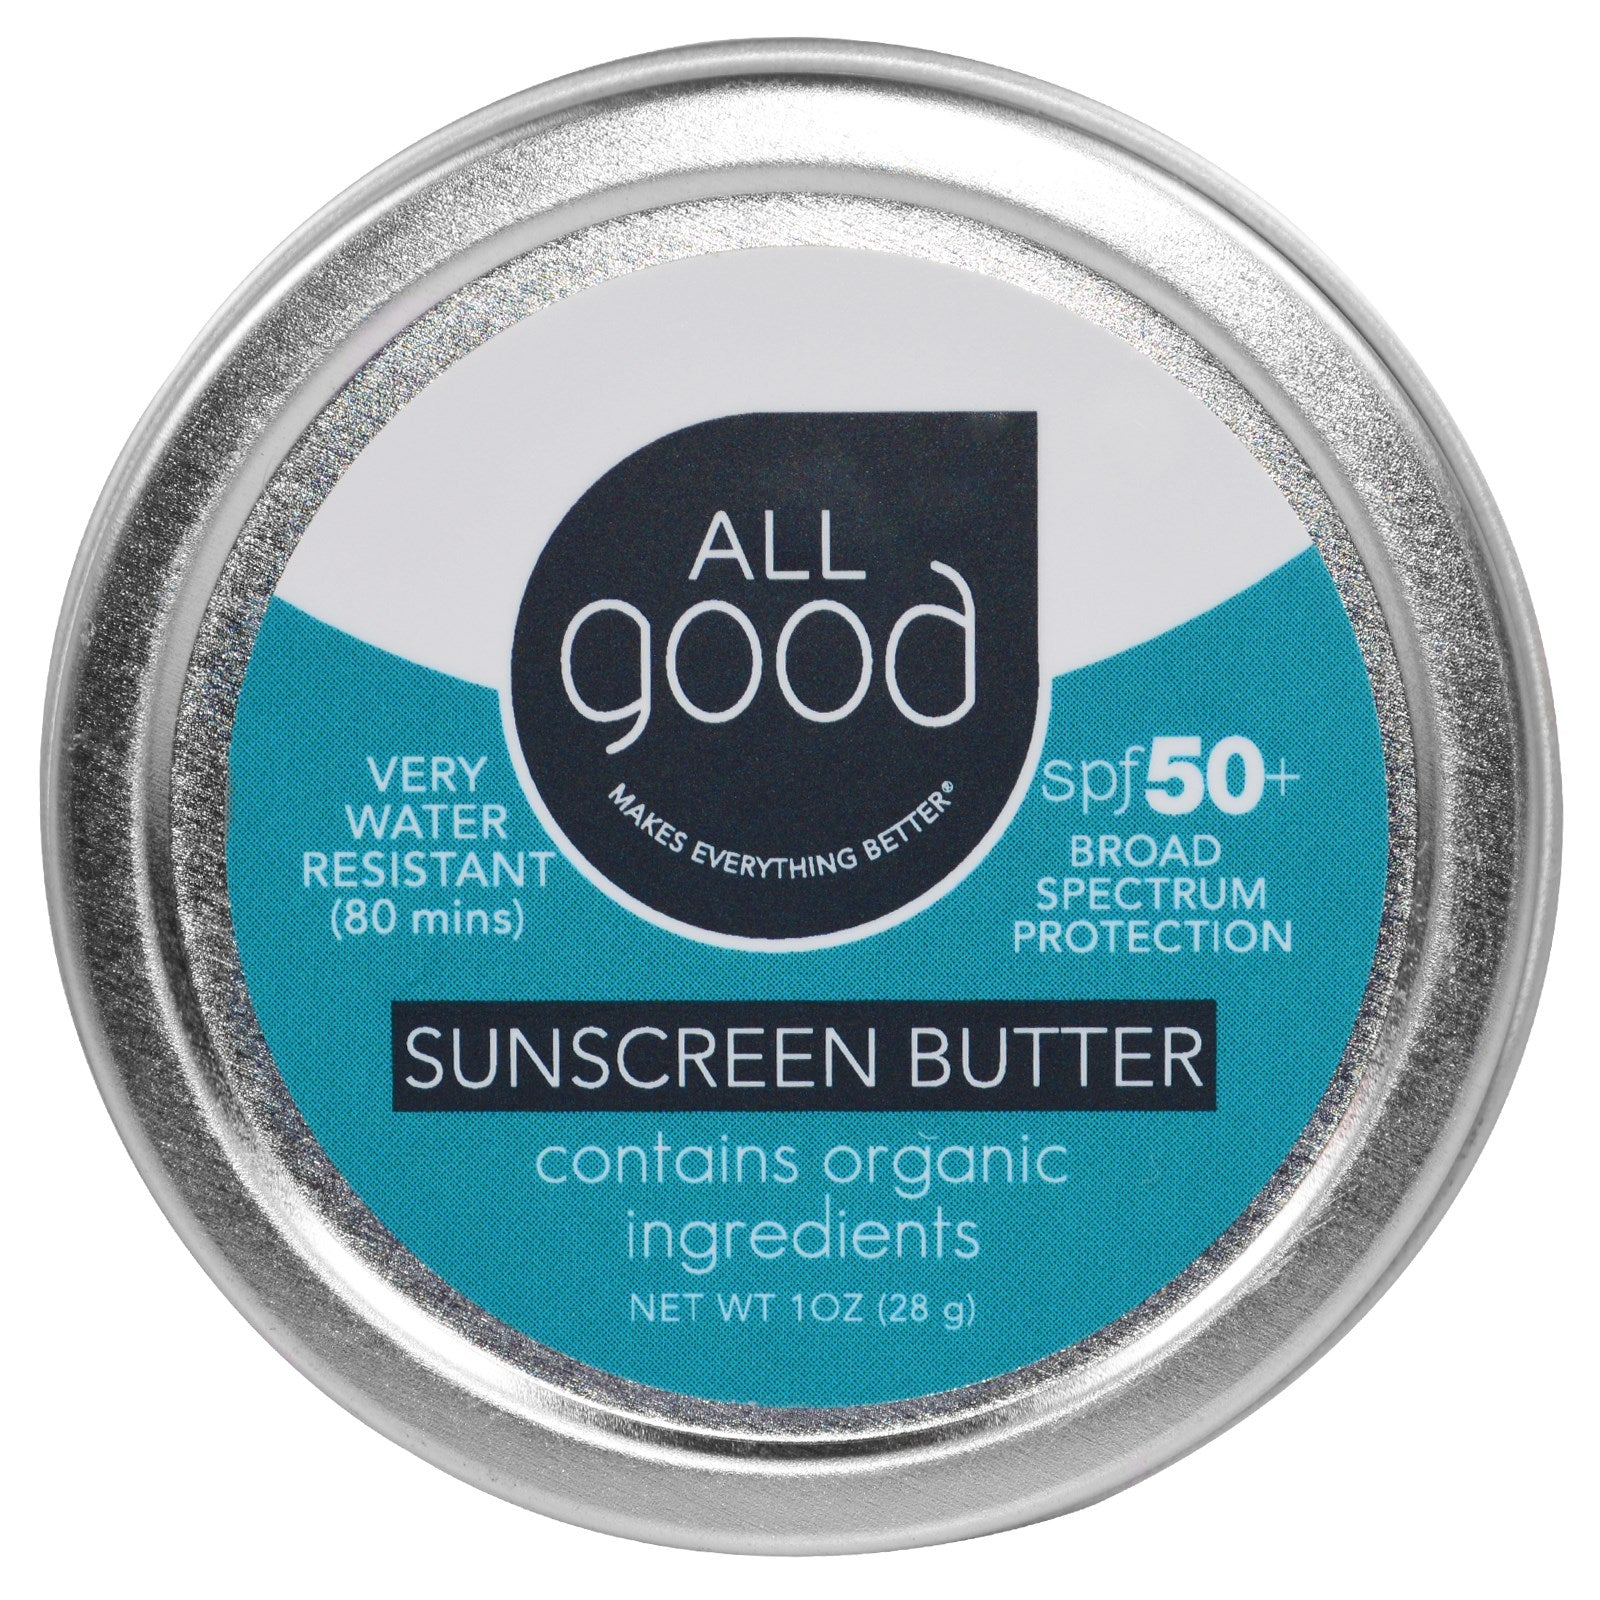 All Good Sunscreen Butter